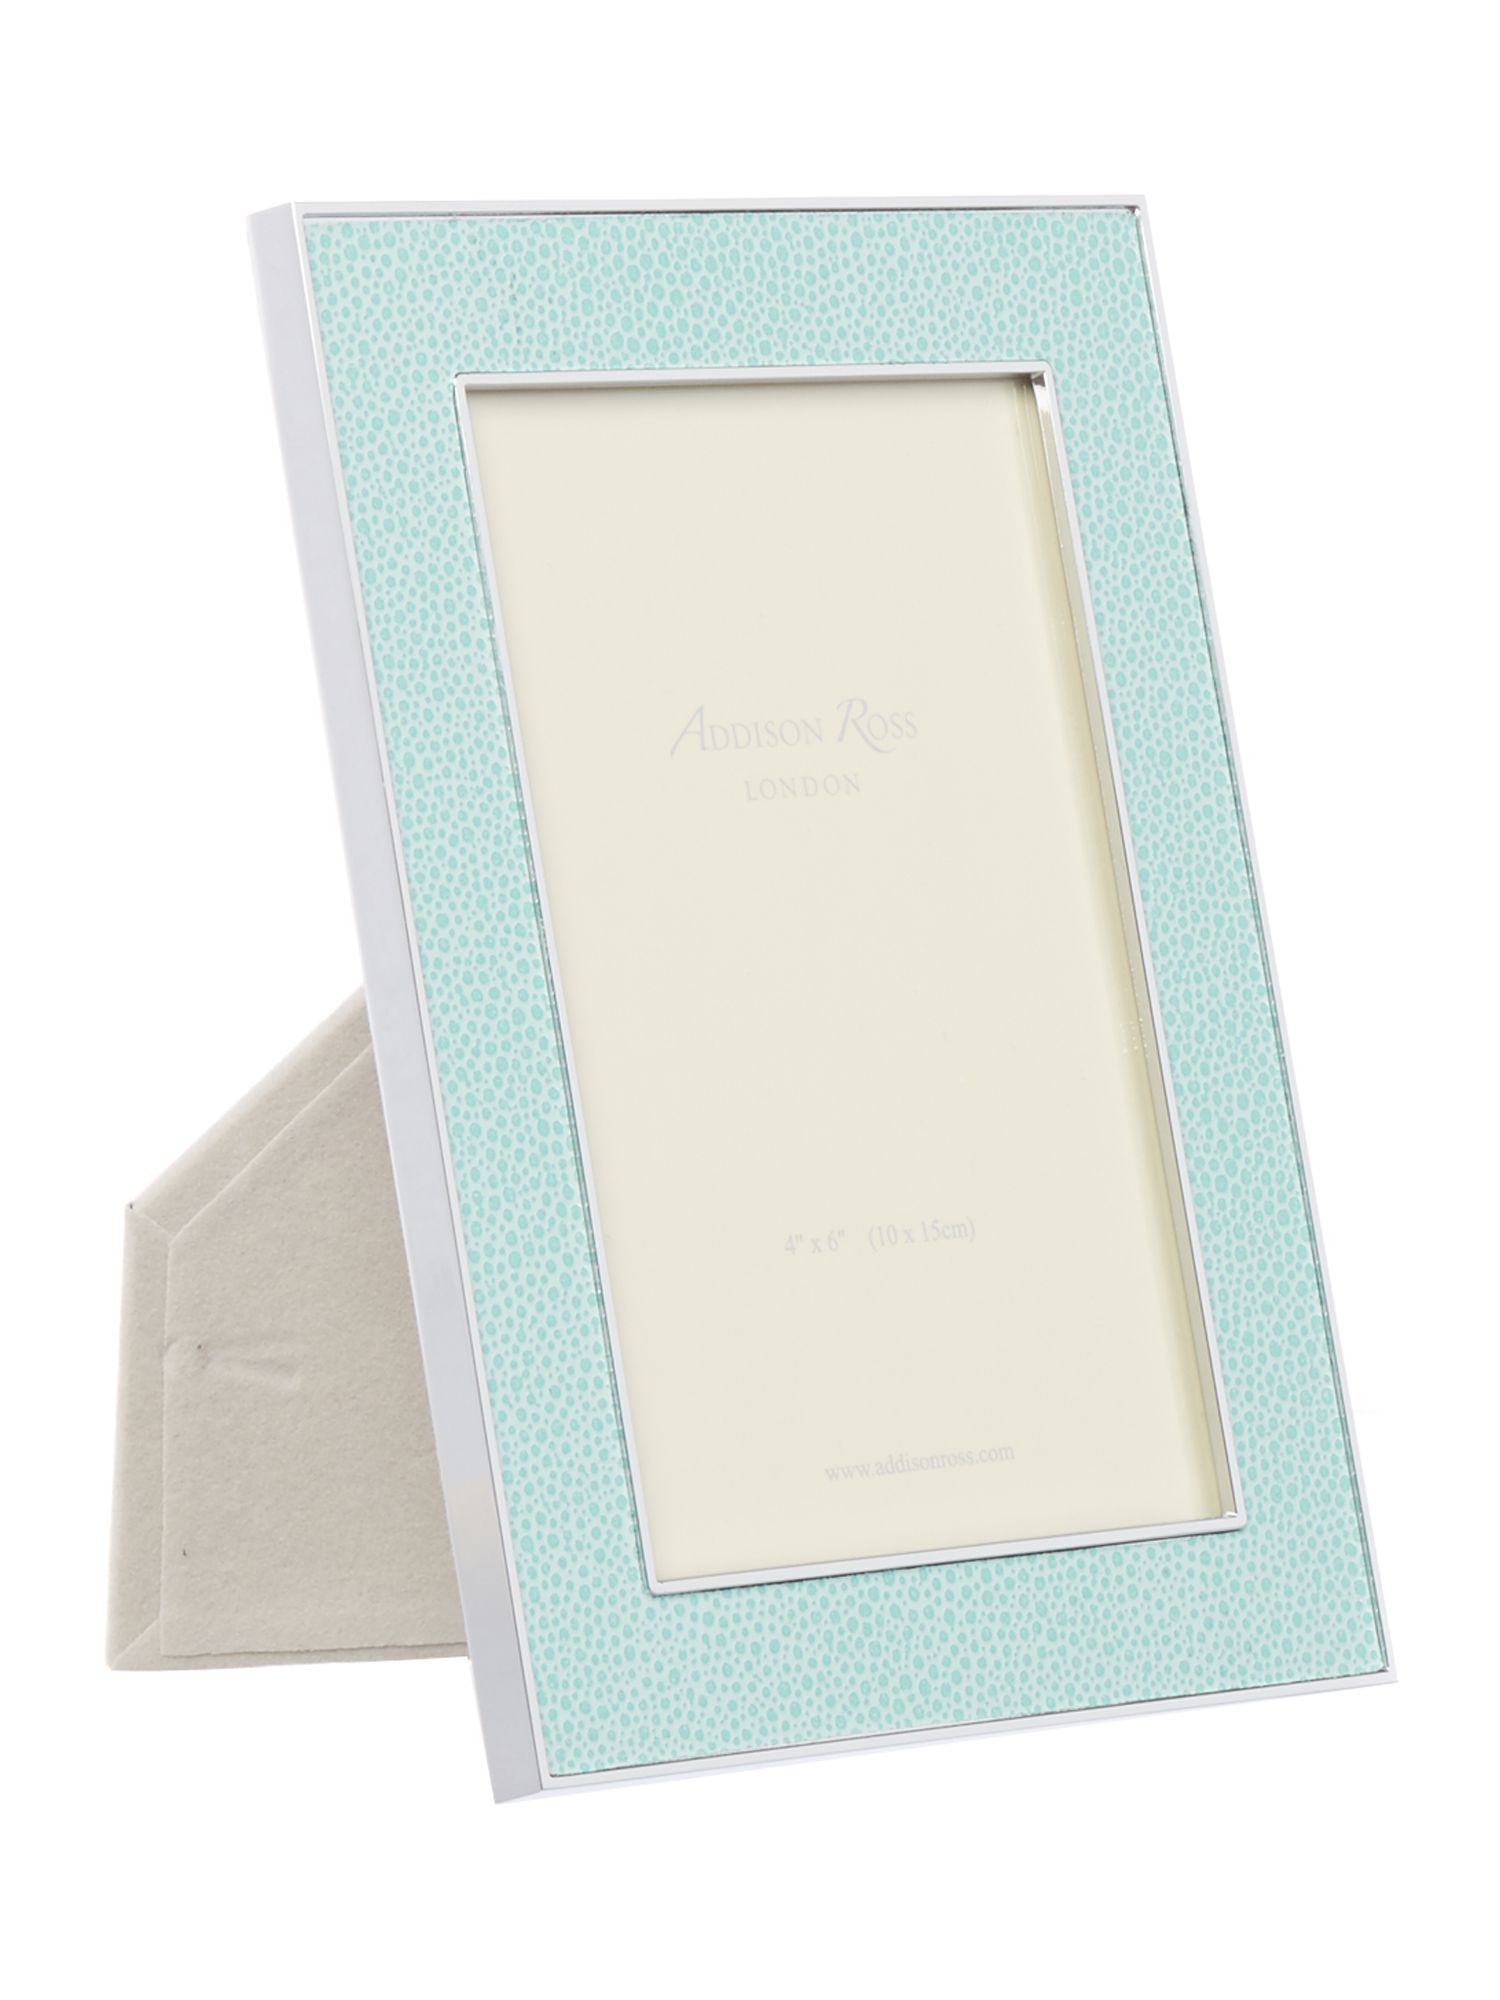 Image of Addison Ross 4x6 shagreen sea green frame